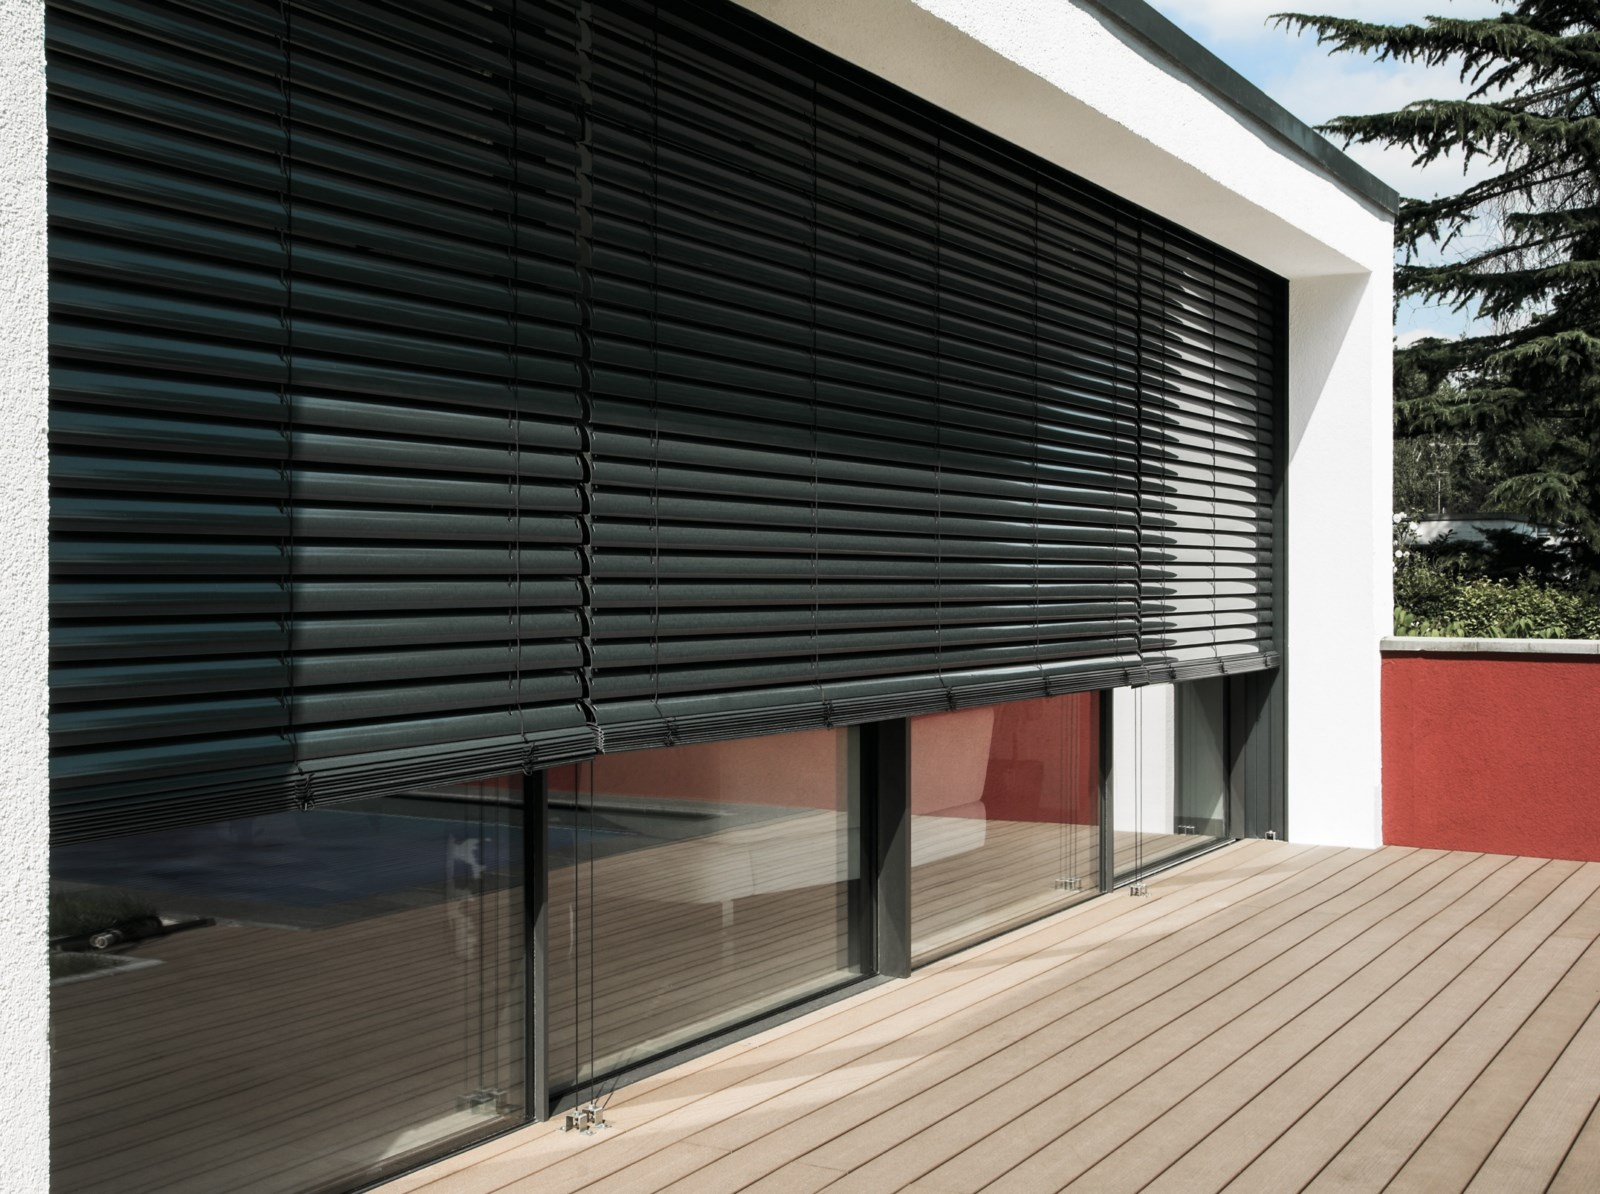 le brise soleil orientable bso aluminium coladis. Black Bedroom Furniture Sets. Home Design Ideas